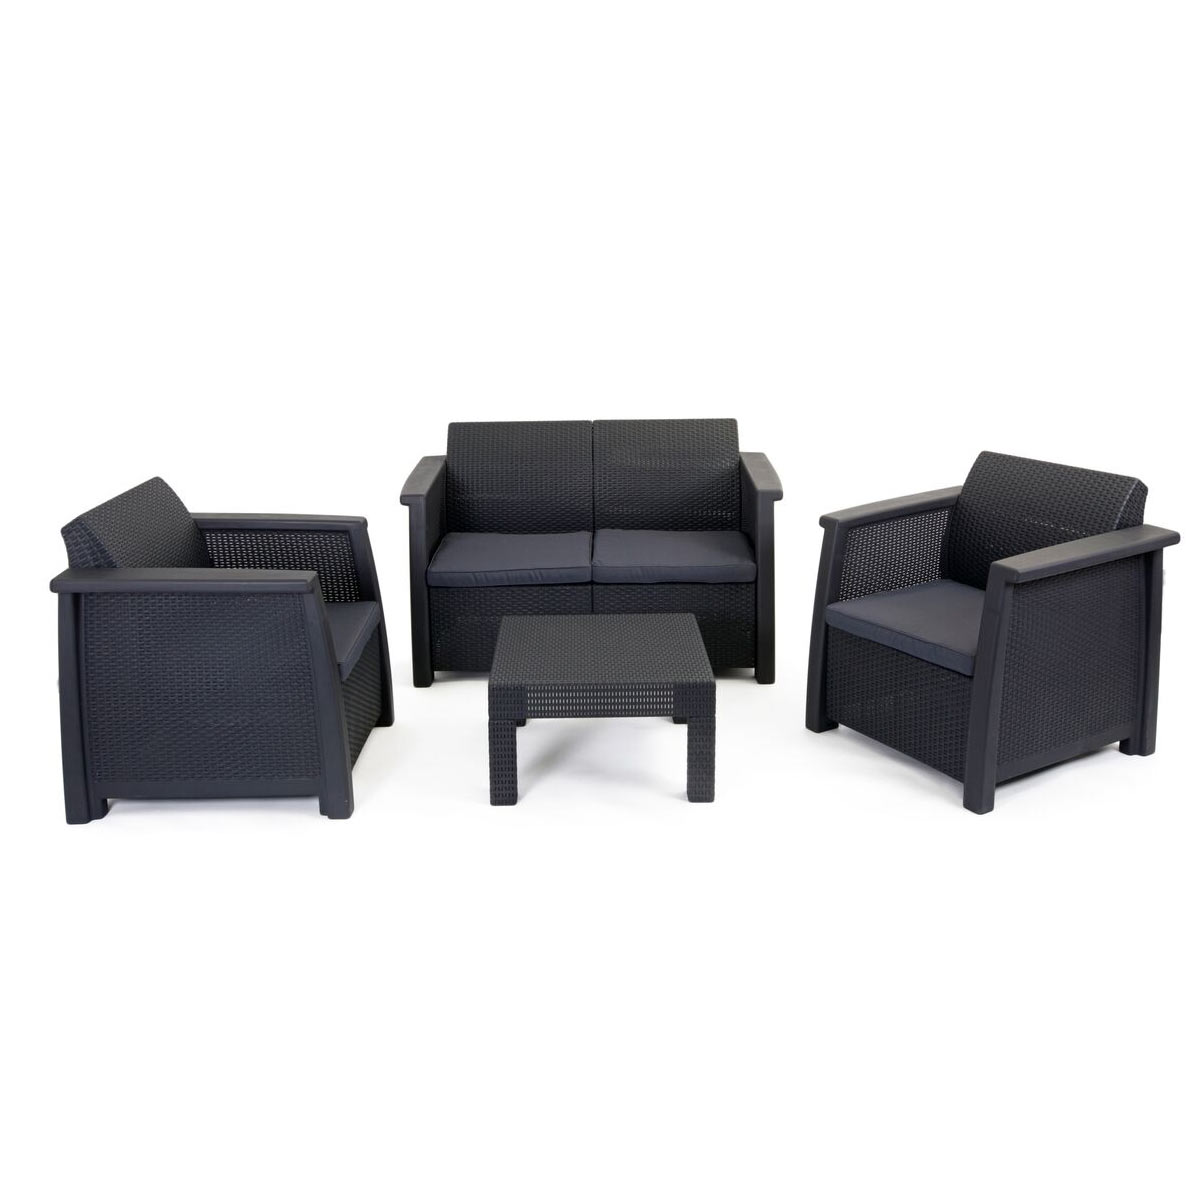 Salon de jardin lounge set